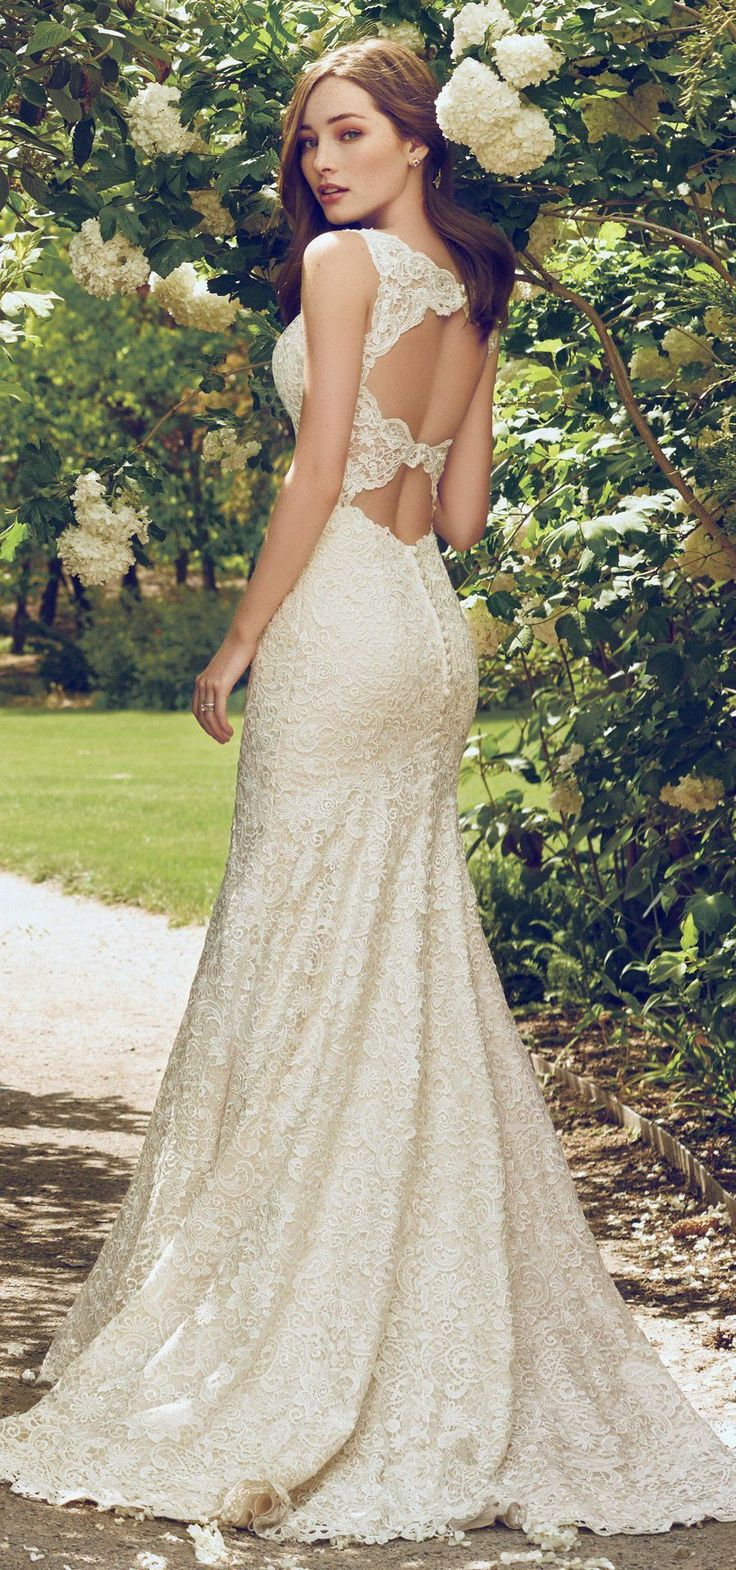 """Oh what a stunning back! """"Hope"""" from @maggiesottero #RebeccaIngram collection features a stunning double-keyhole back. #bridal #wedding #weddingdress #weddinggown #bridalgown #dreamgown #dreamdress #engaged #inspiration #bridalinspiration #weddinginspiration #keyhole #weddingdresses #lace #romantic"""